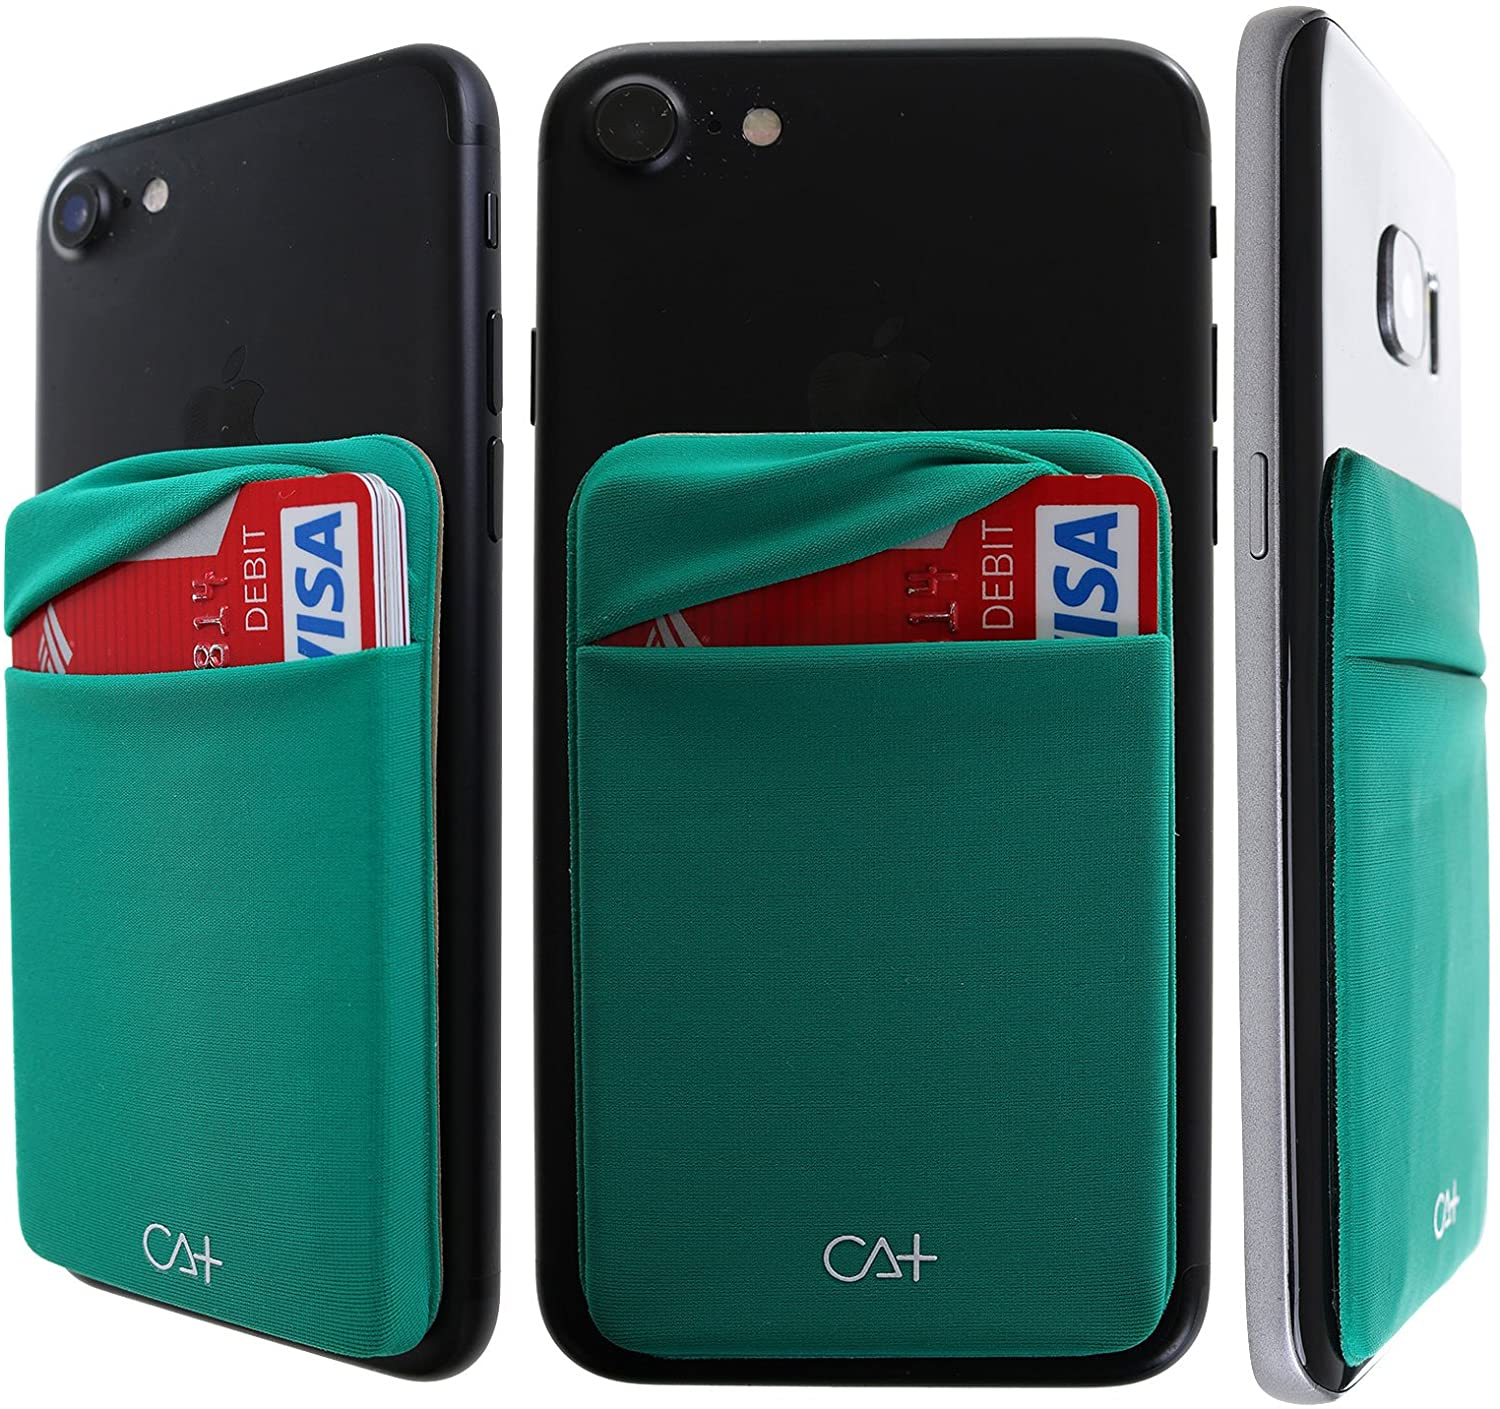 [Double Secure] Lid Credit Card Holder Stick on Wallet Discreet ID Holder Lycra Spandex Card Sleeves for Smartphones, iPhone Galaxy Cell Phone Wallet Case 3M Adhesive (Green)